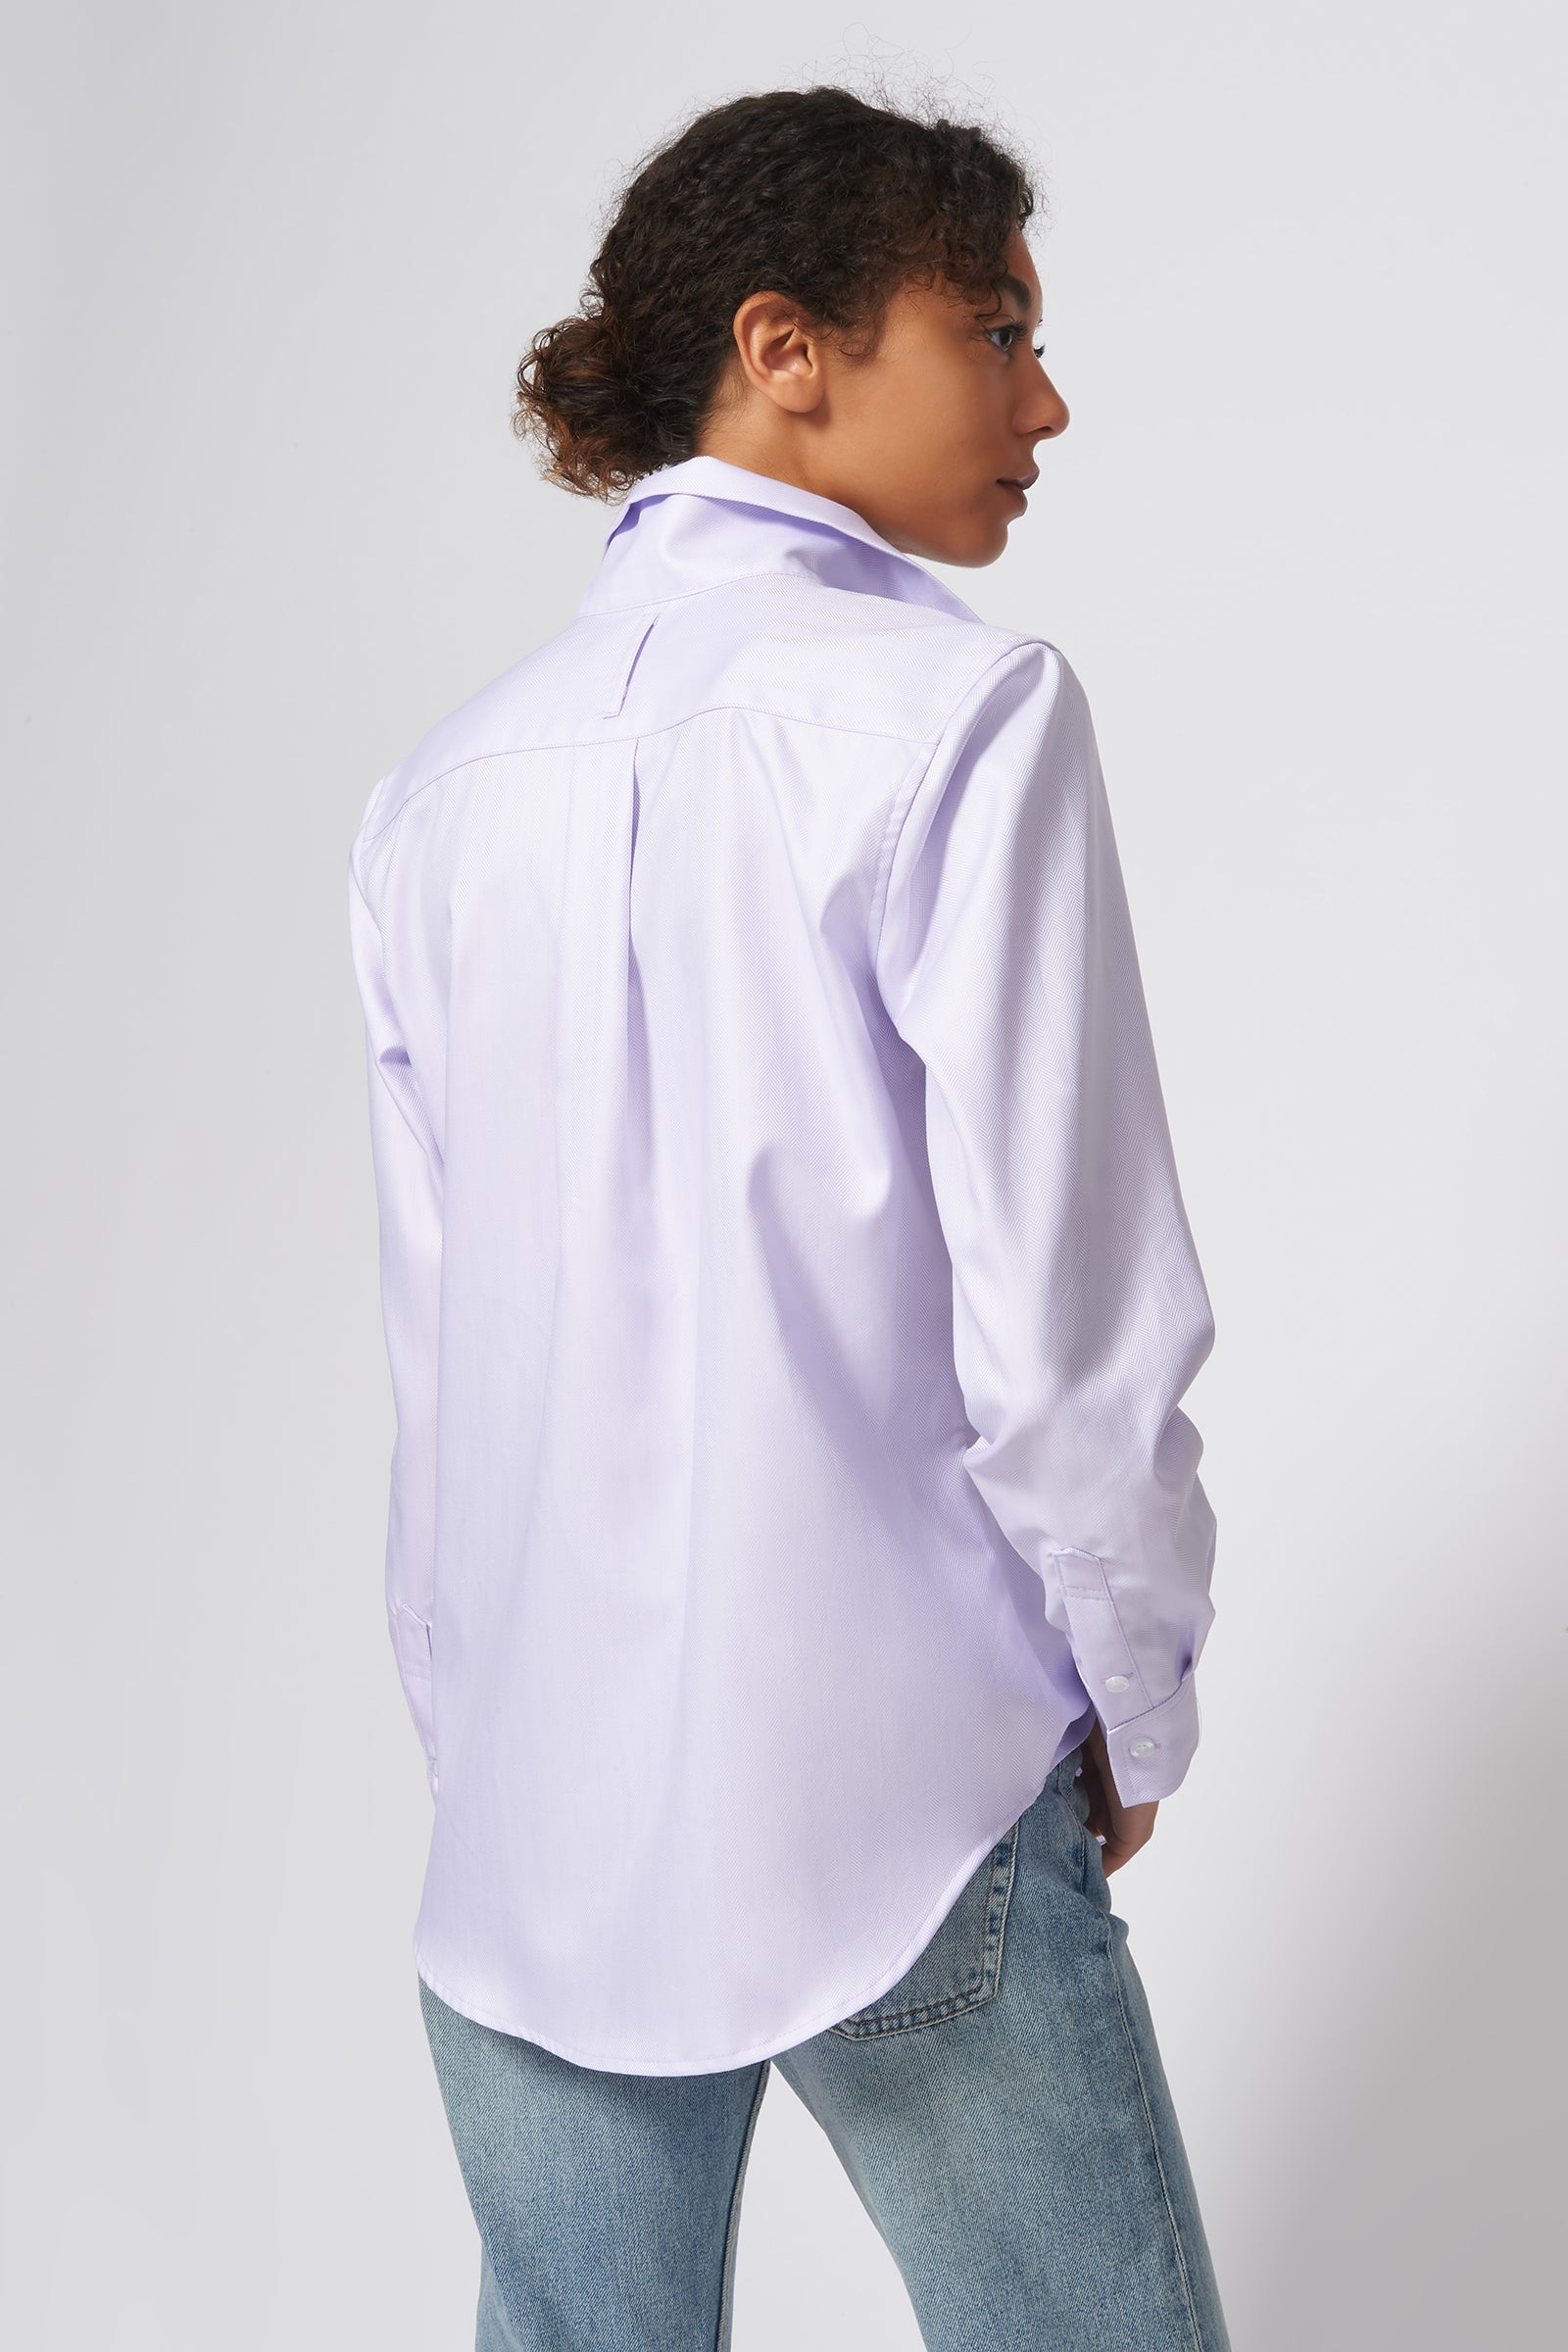 Kal Rieman Ginna Box Pleat Shirt in Lavendar Fine Herringbone on Model Full Back View